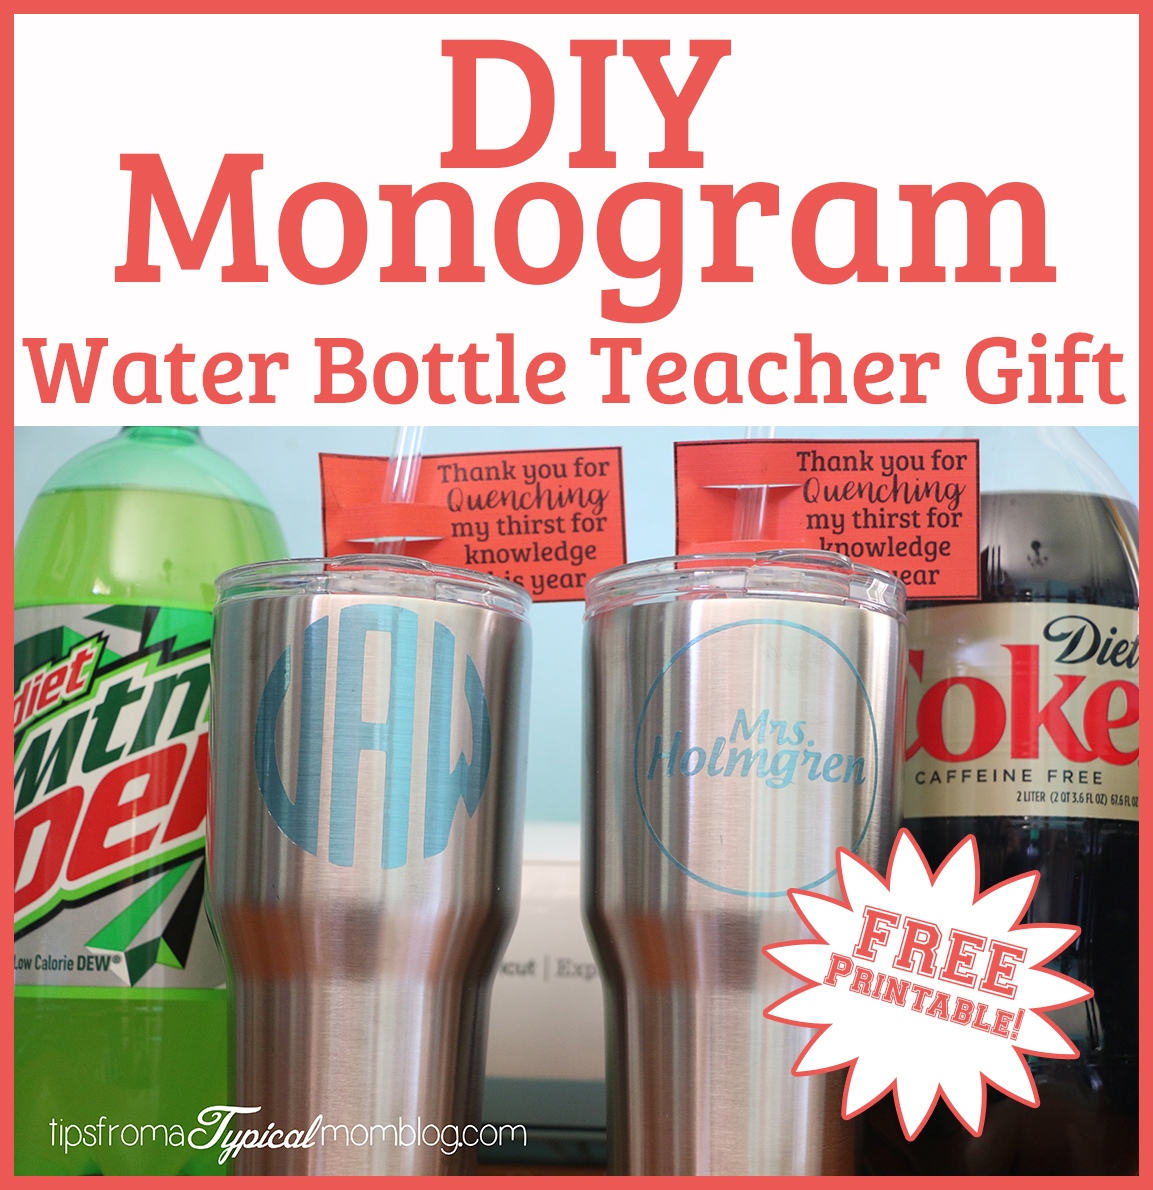 Diy monogram water bottles end of school year teacher for Diy monogram gifts